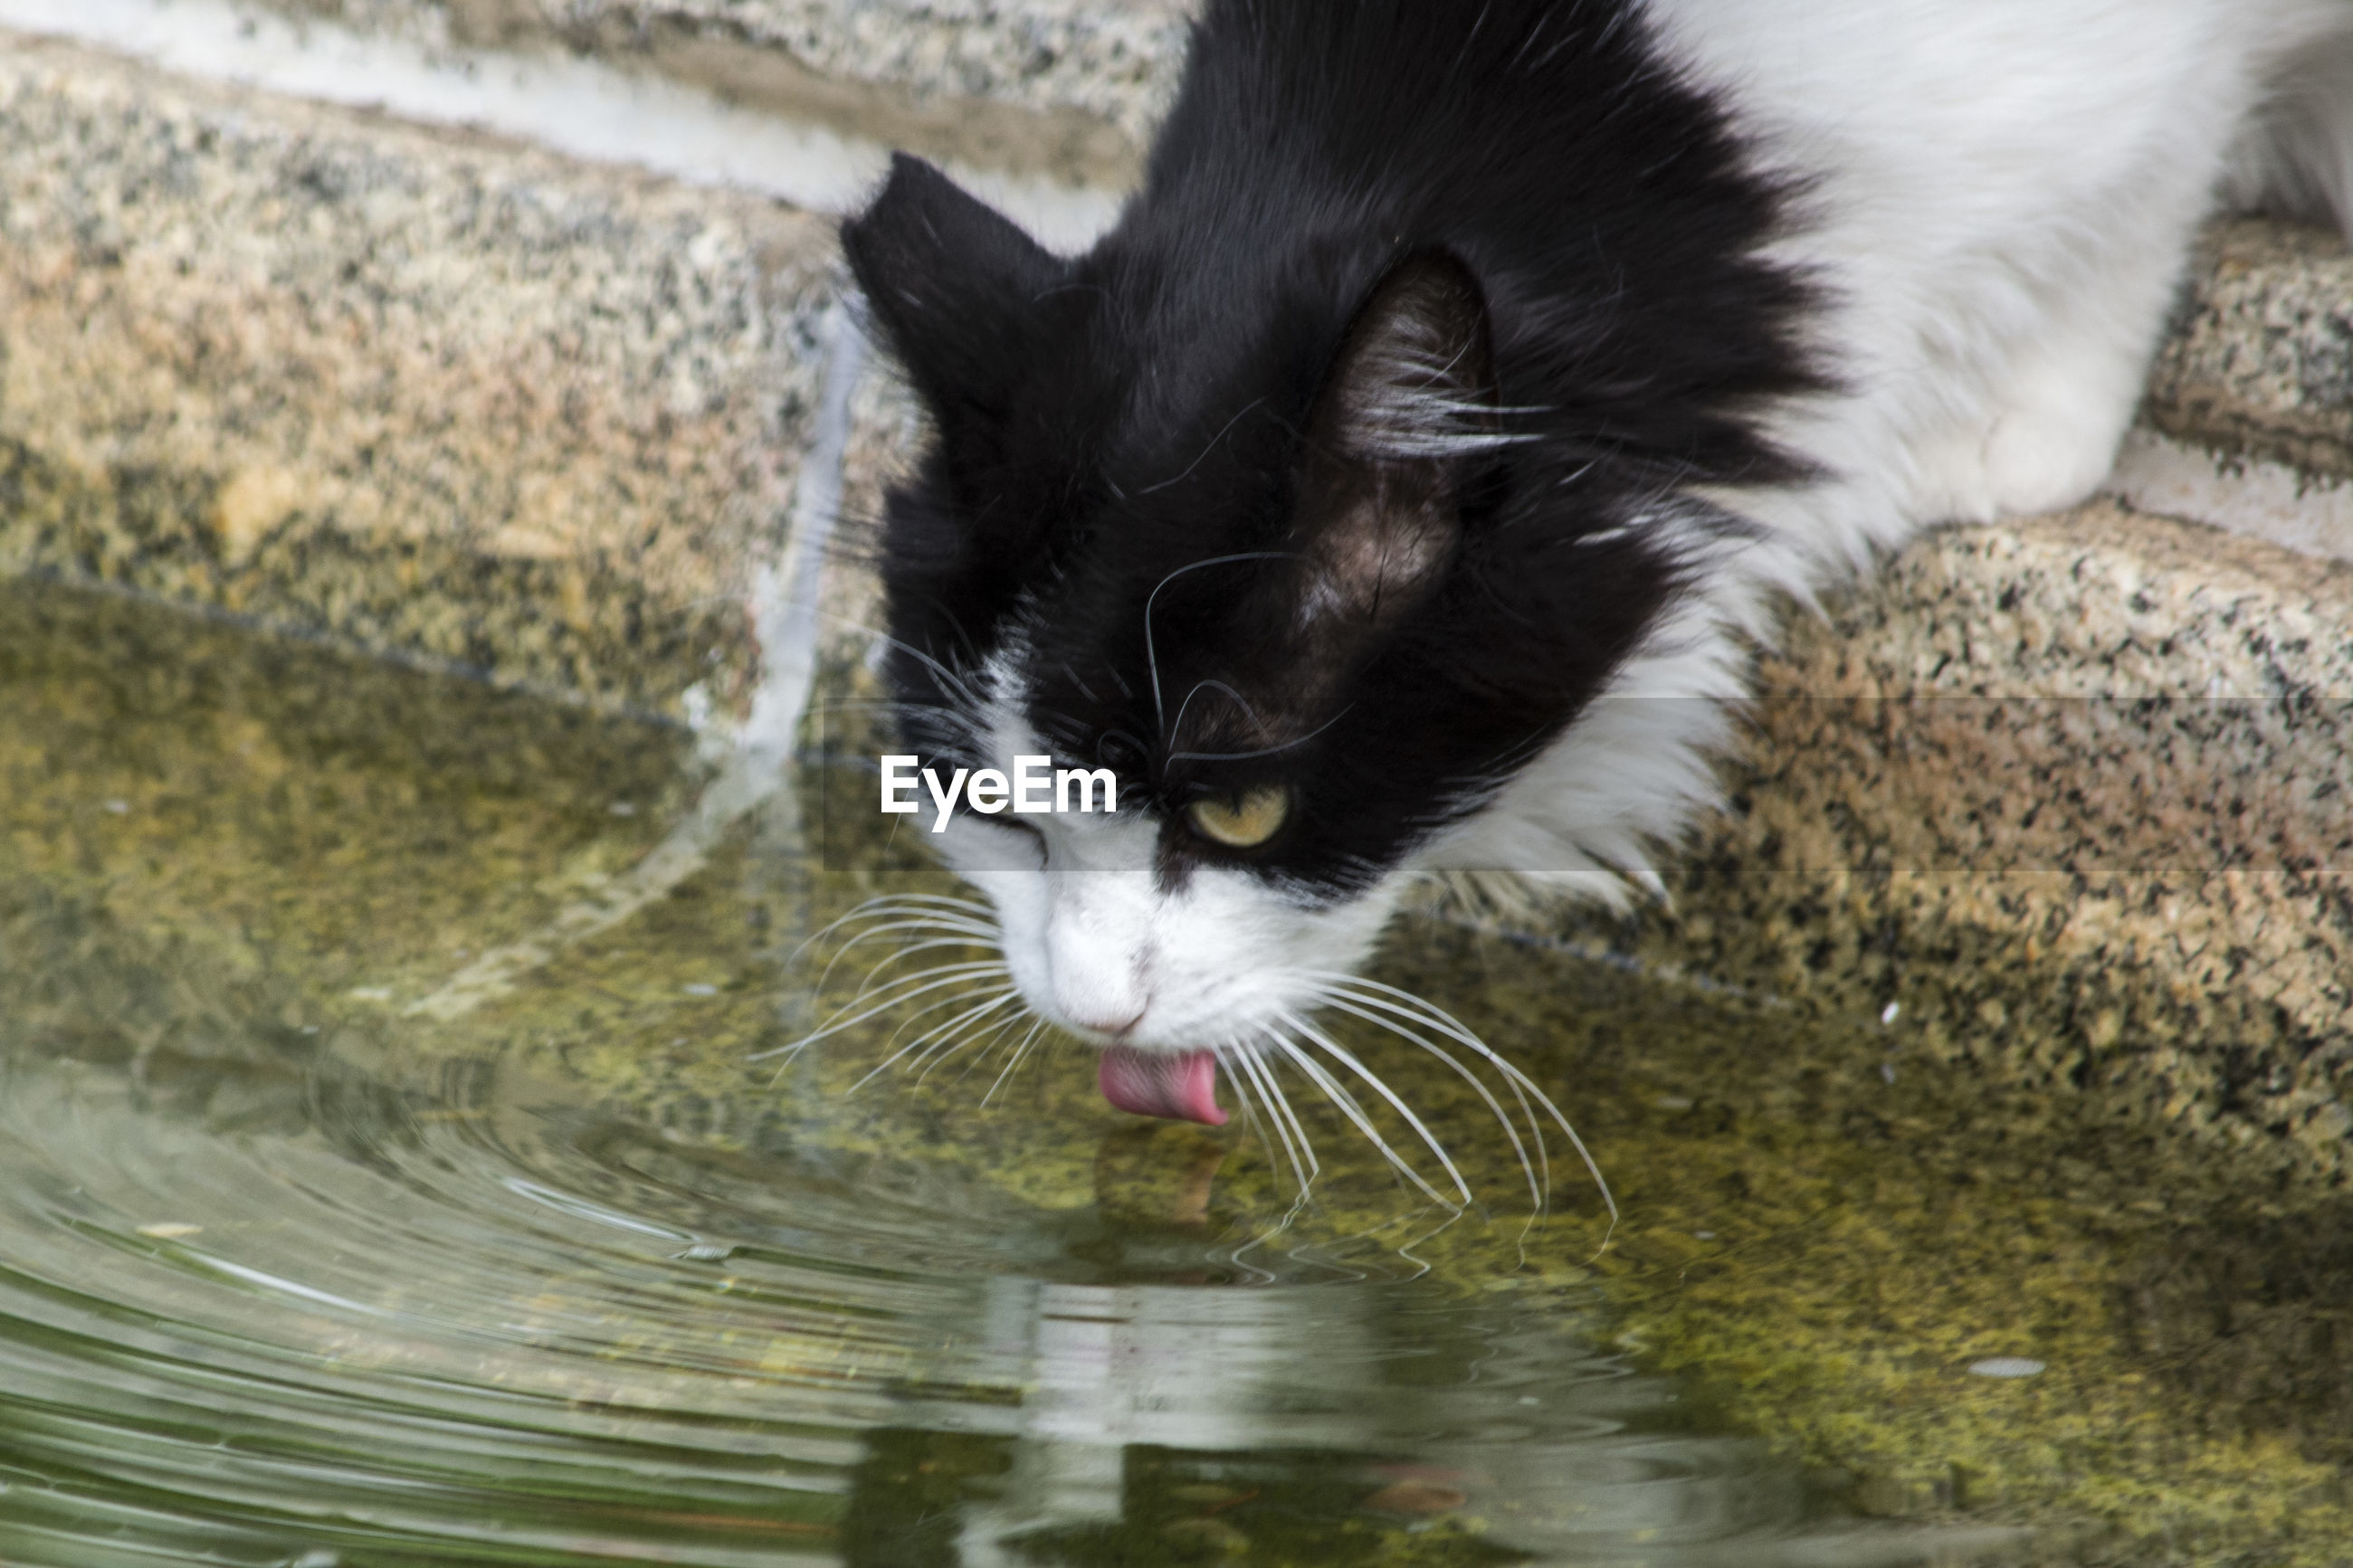 HIGH ANGLE VIEW OF CAT AT WATER